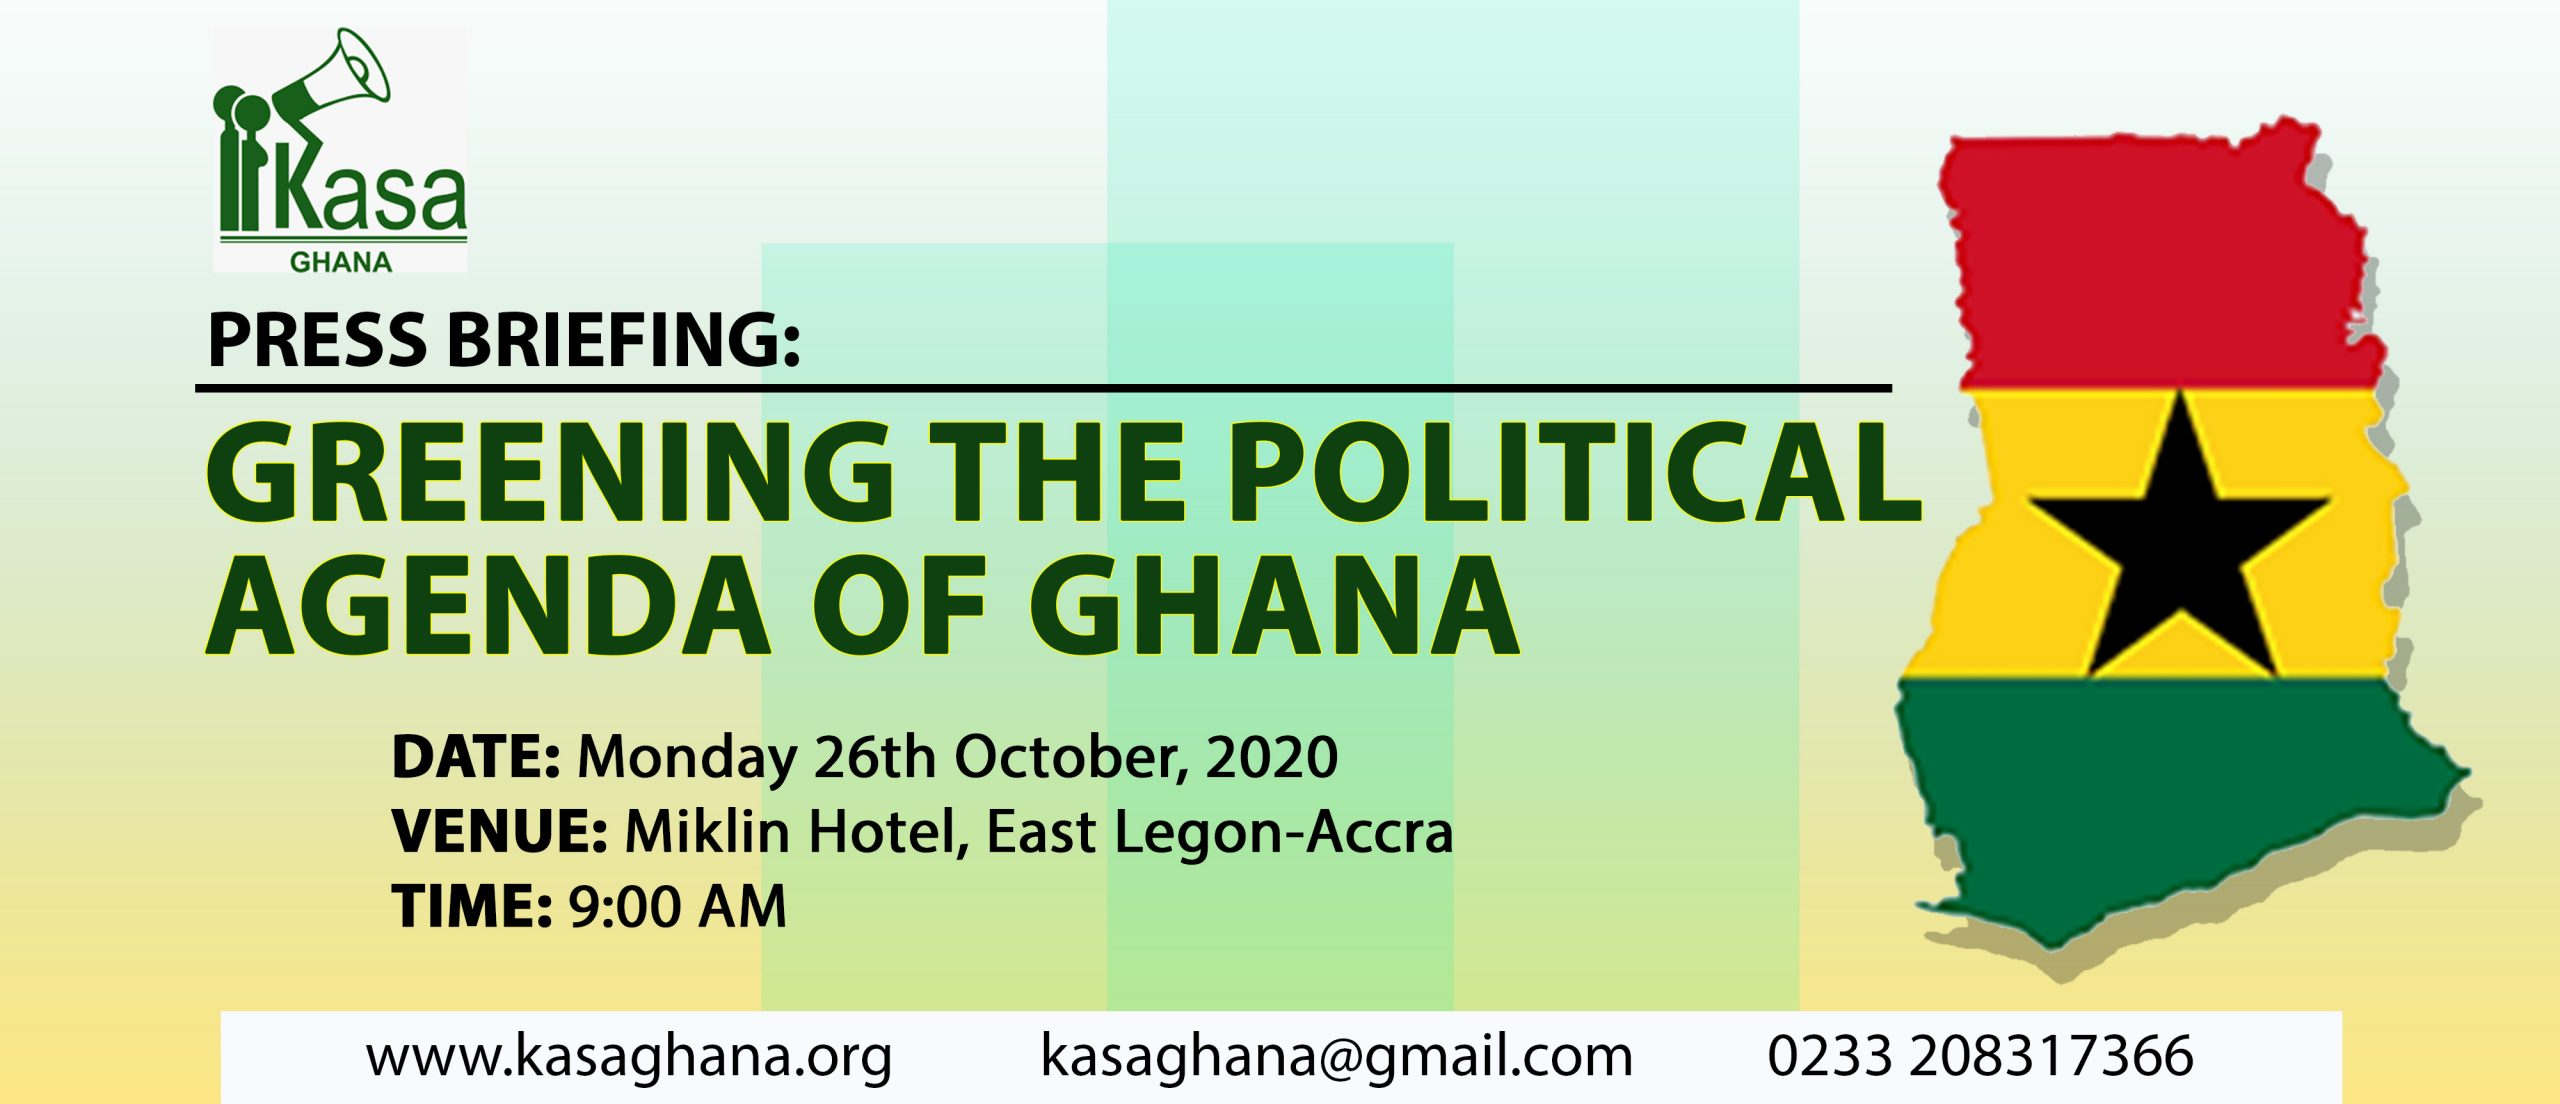 Greening the political agenda of Ghana